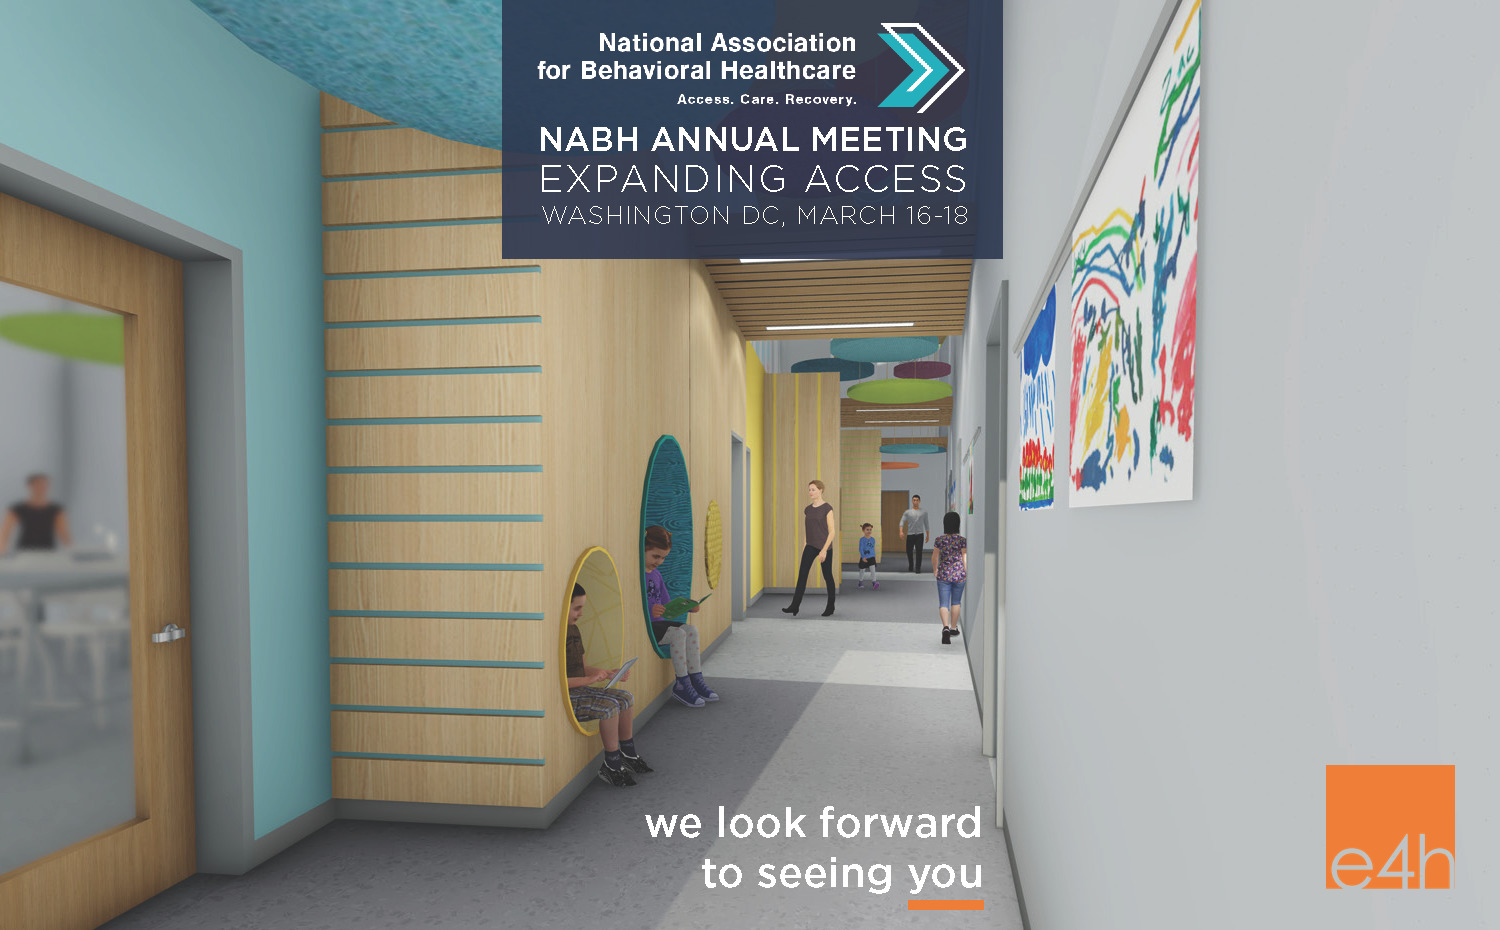 Rendering - hallway of behavioral health facility